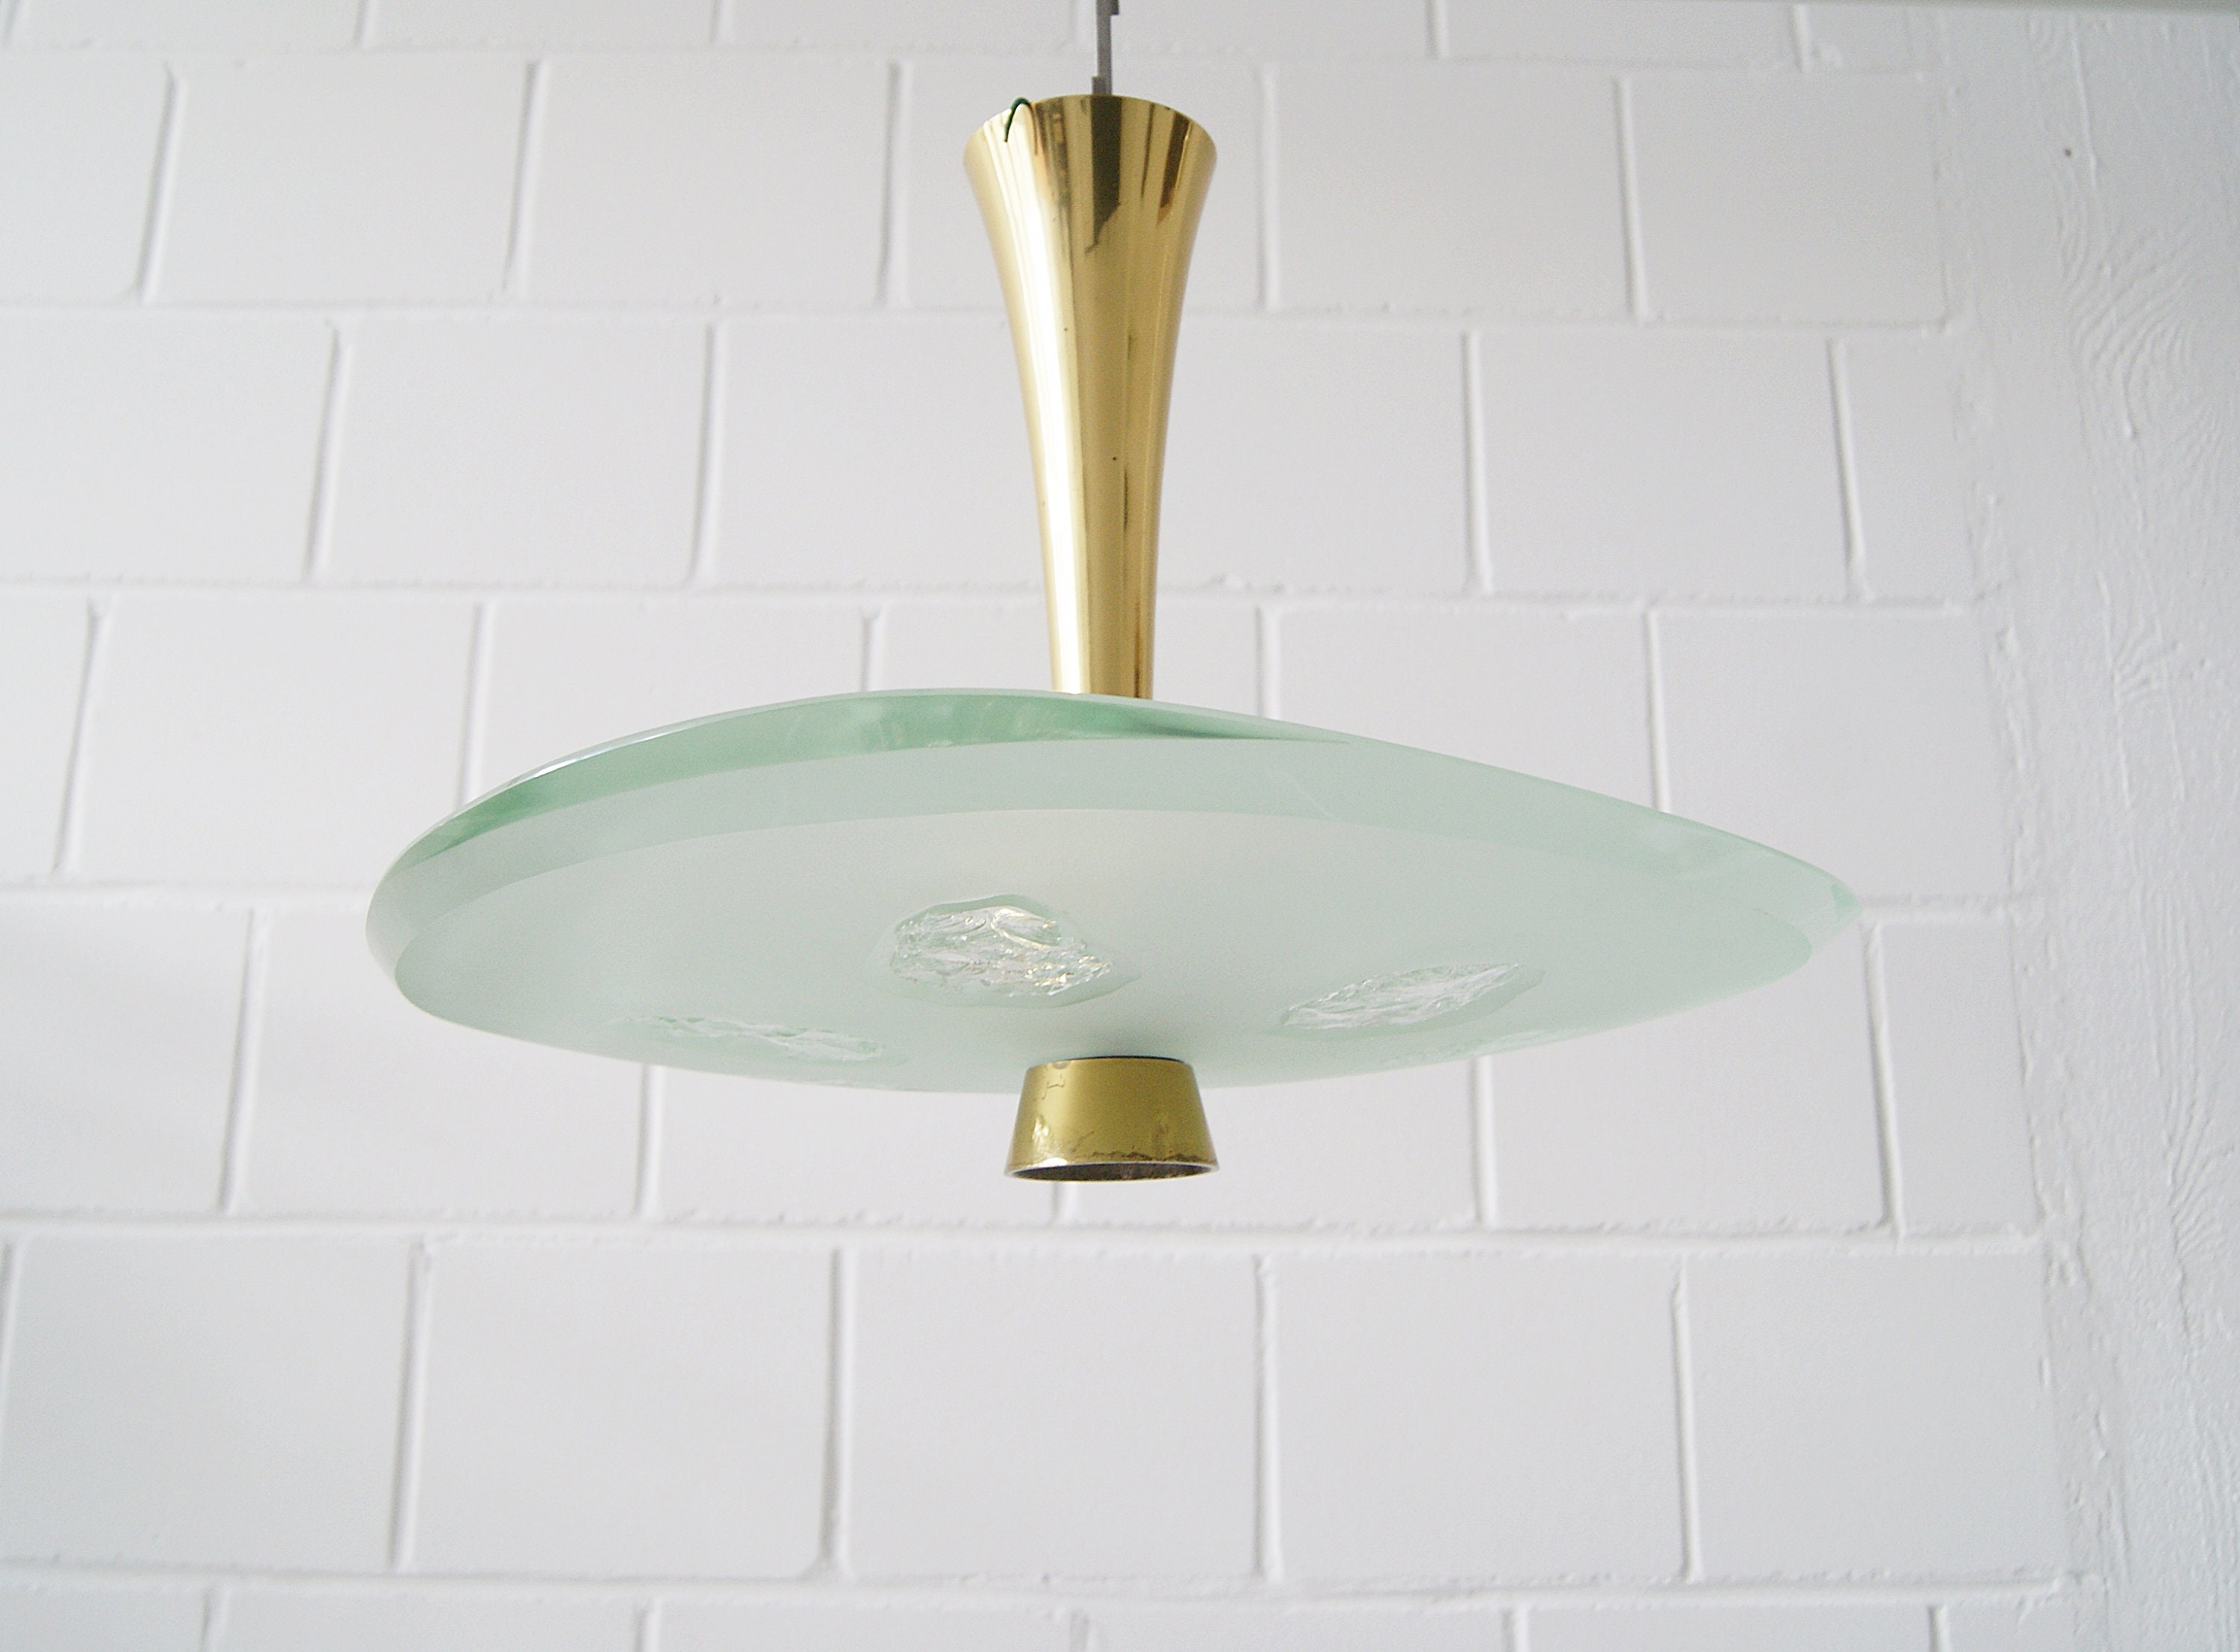 Ceiling lamp by Fontana Arte Model 1748 Lamp by Max Ingrand ...